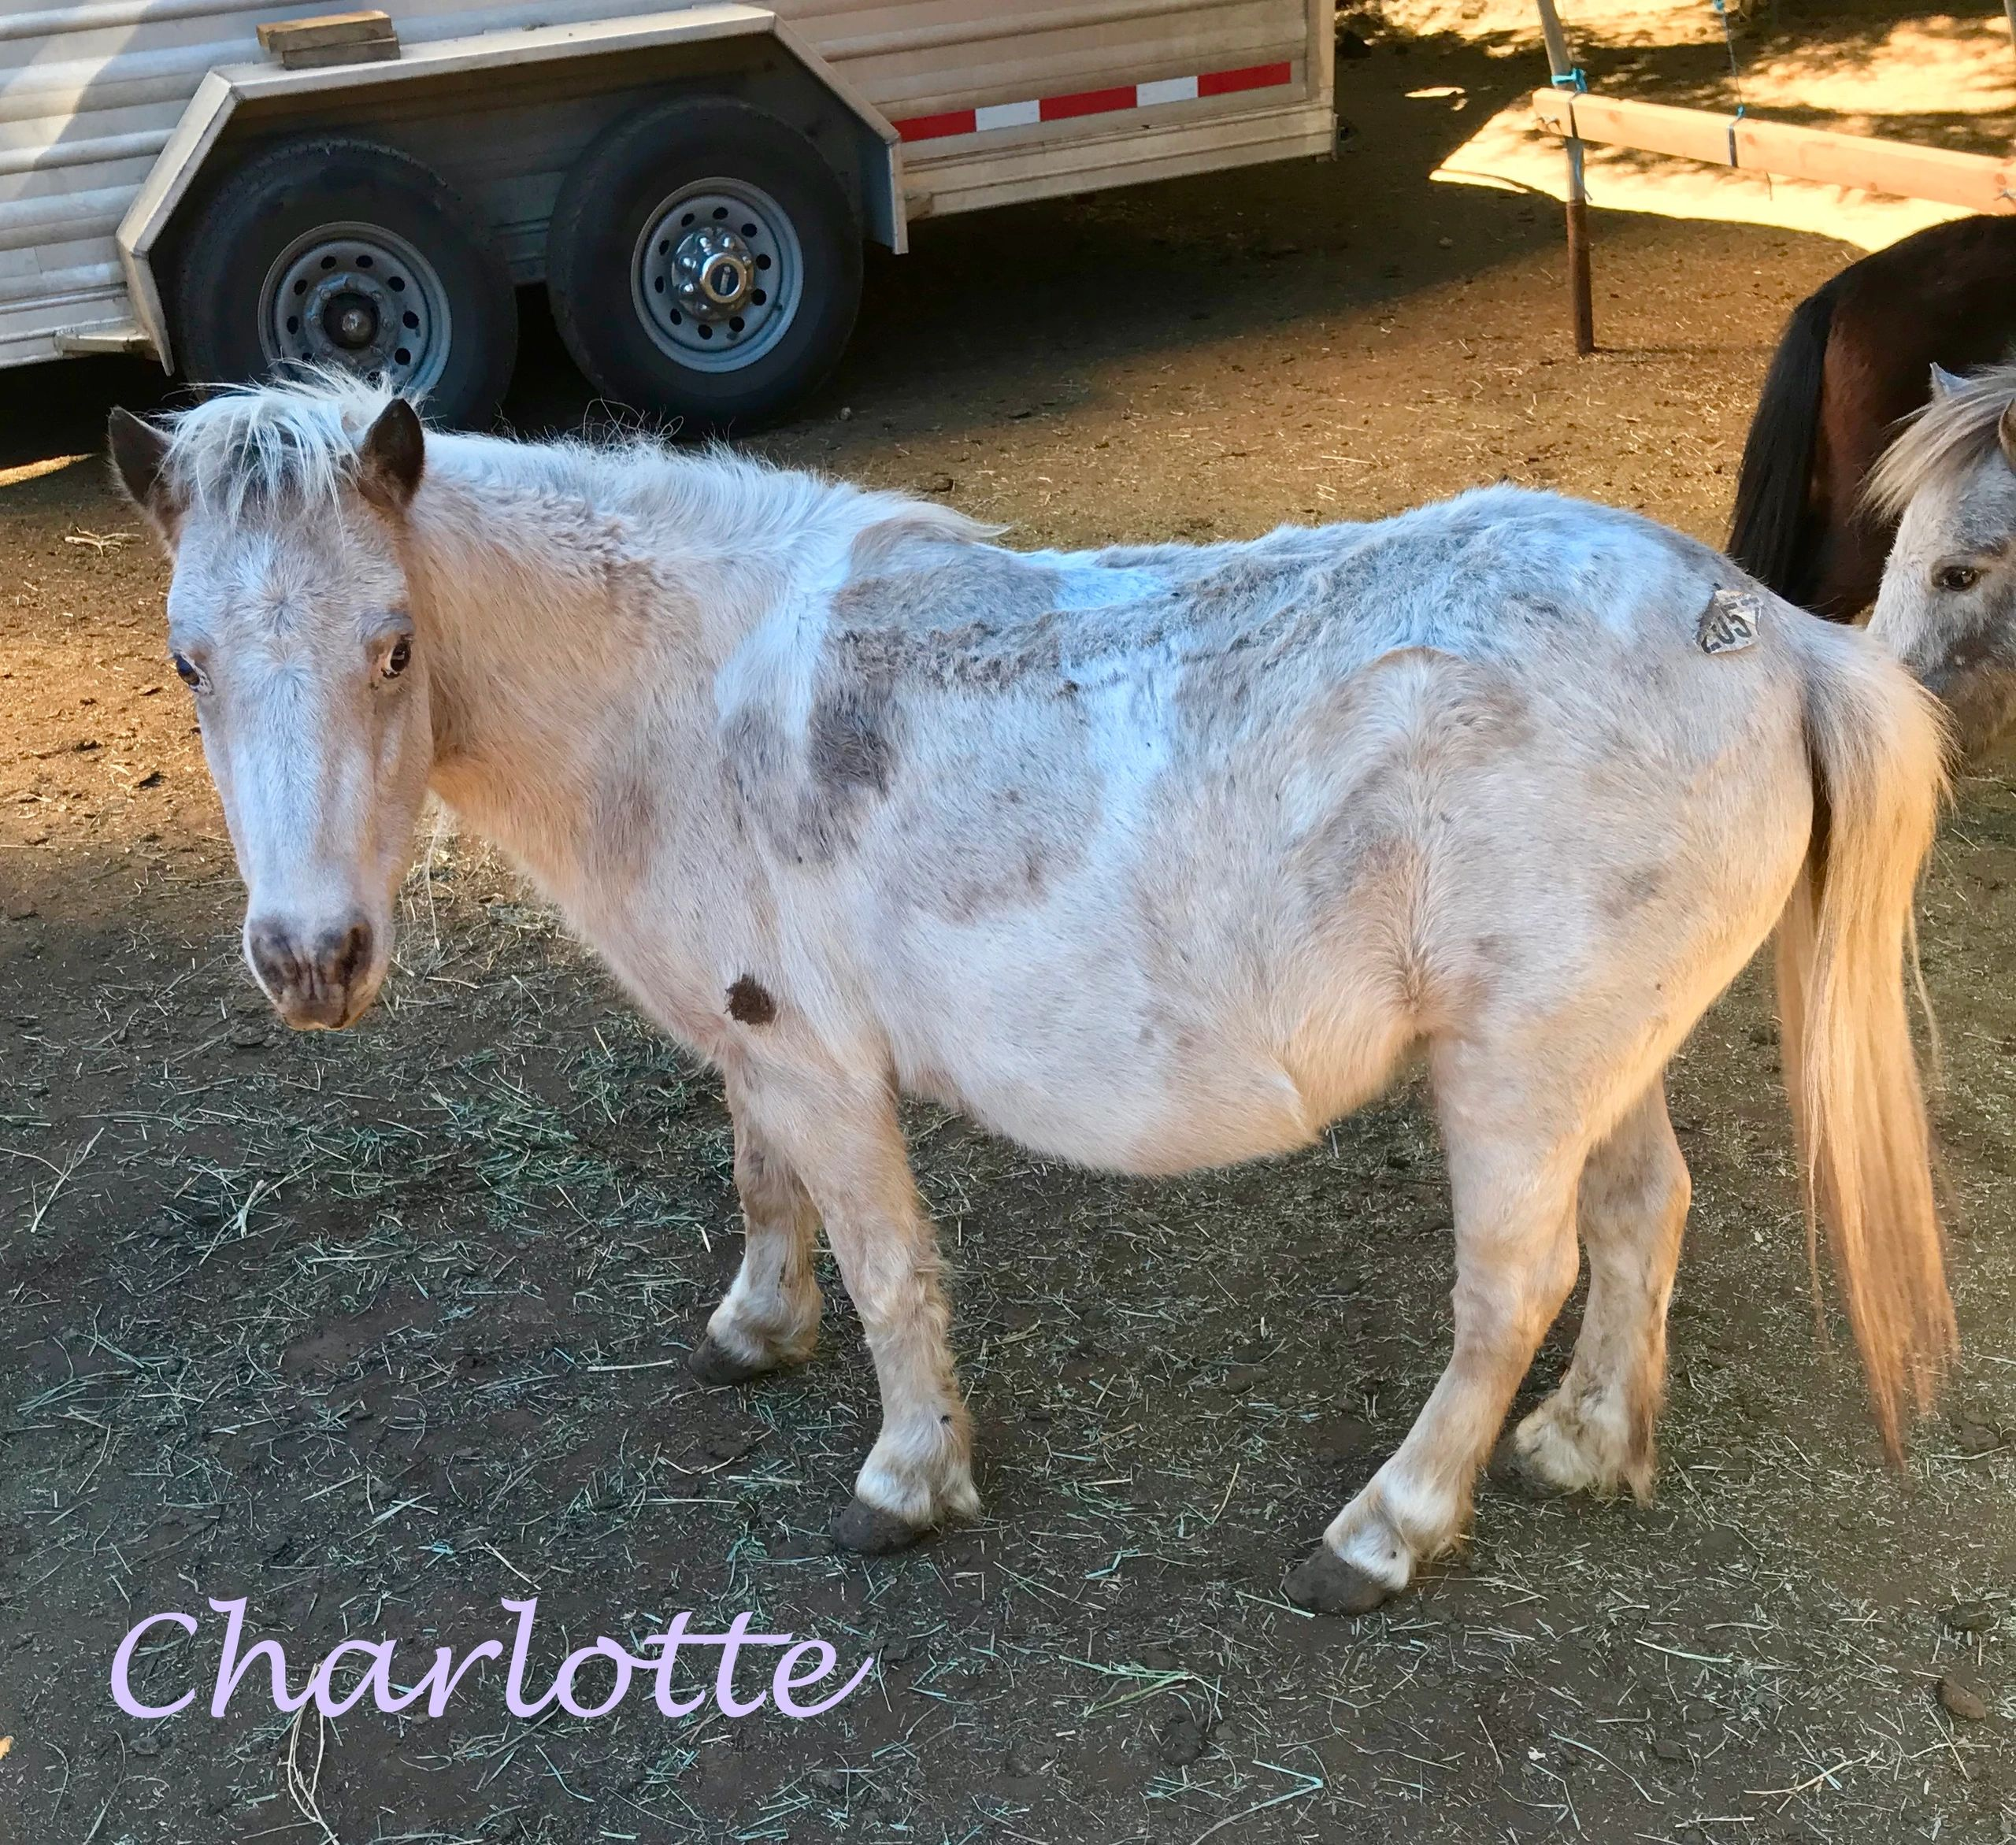 "{""blocks"":[{""key"":""13cfc"",""text"":""Charlotte is an approximately 5 year old,  Palomino Paint, mare standing at 35 inches tall. She is a shy girl who is learning humans can be nice. She would love a family that can continue helping to build her trust. Charlotte's adoption fee is $400."",""type"":""unstyled"",""depth"":0,""inlineStyleRanges"":[],""entityRanges"":[],""data"":{}}],""entityMap"":{}}"